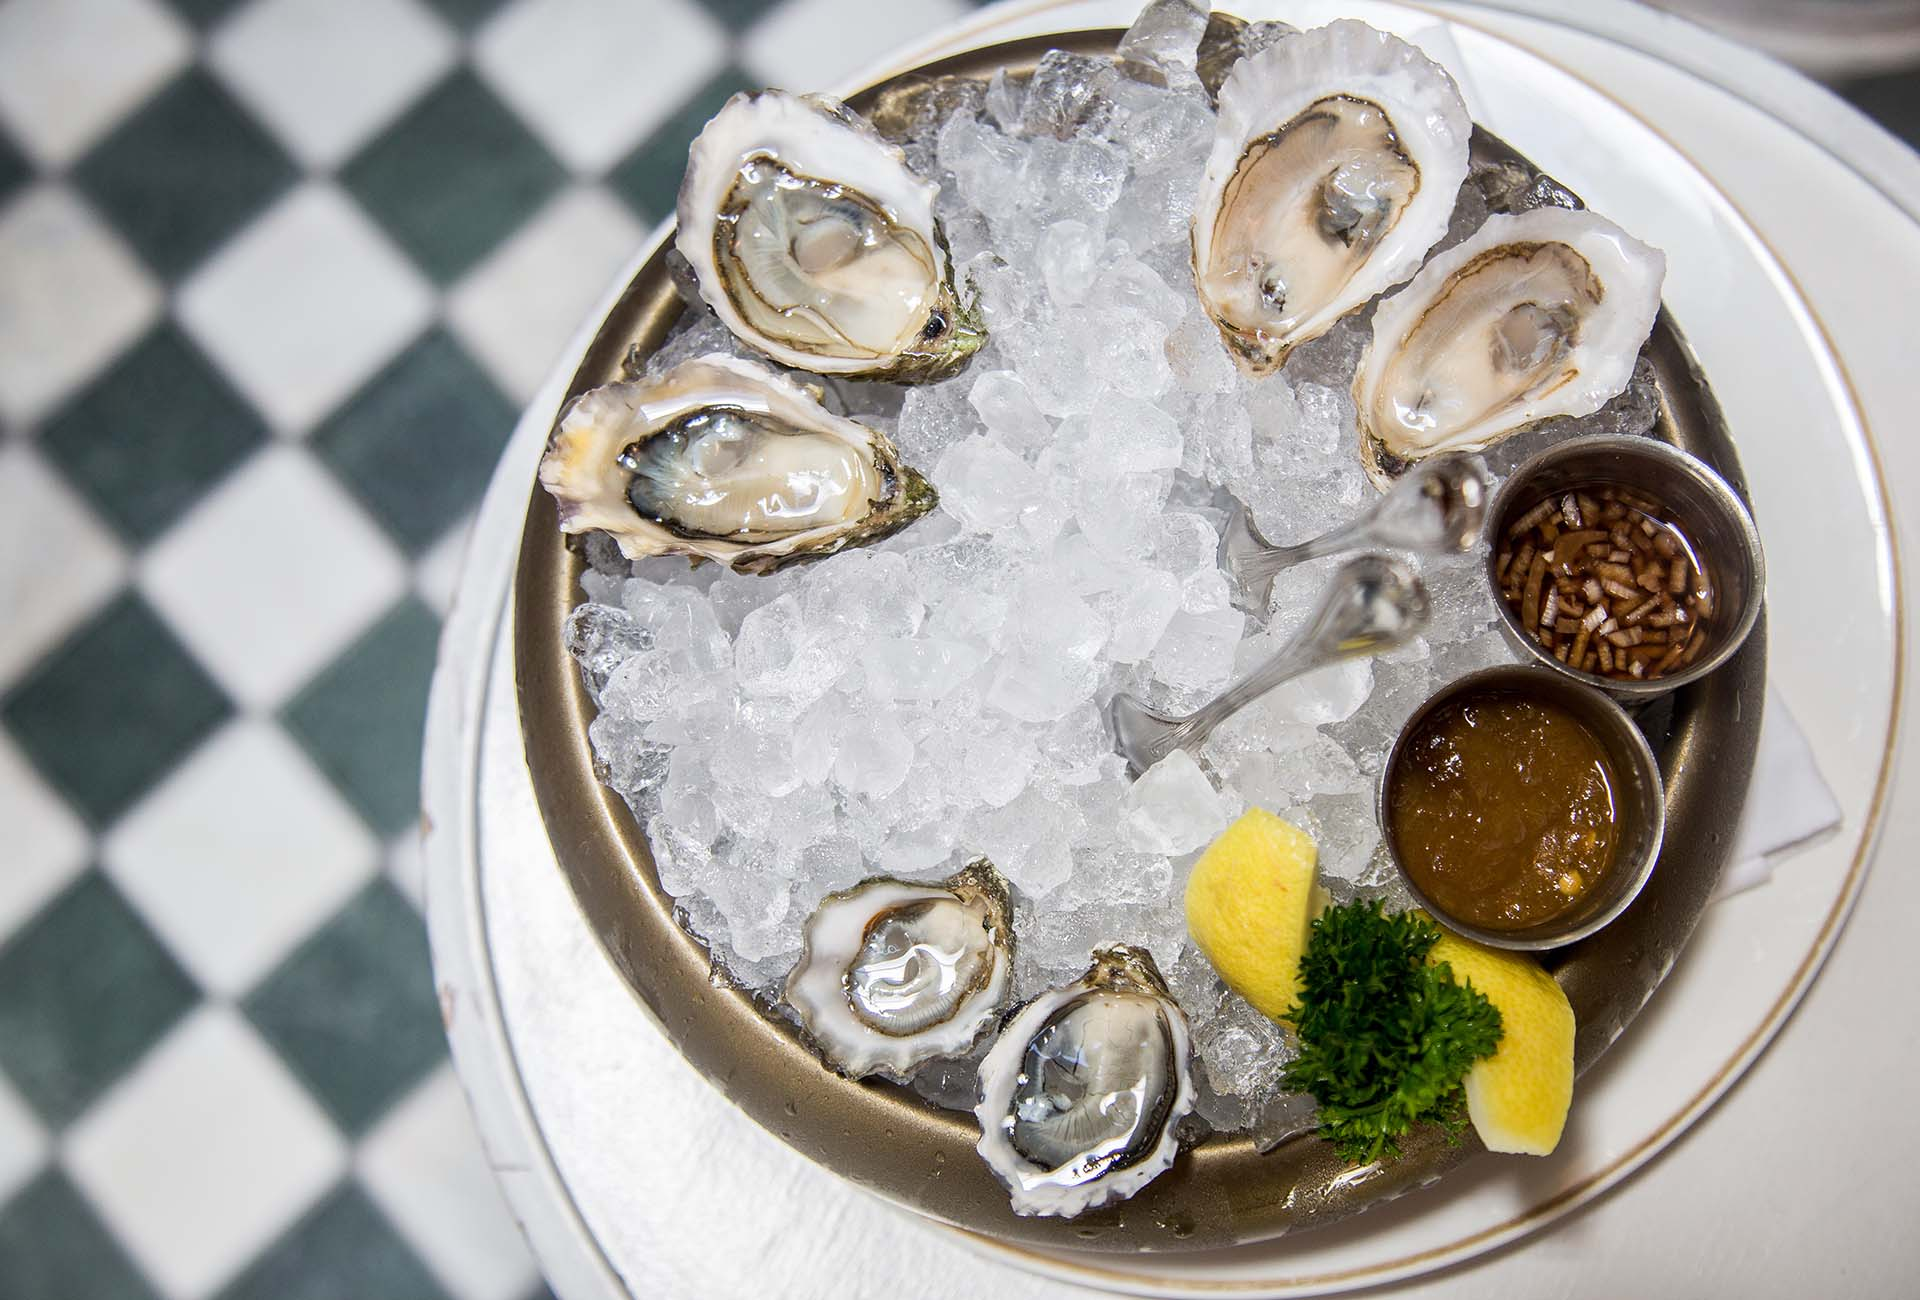 The Kumamoto oysters with the Grassy Bar and Saquish